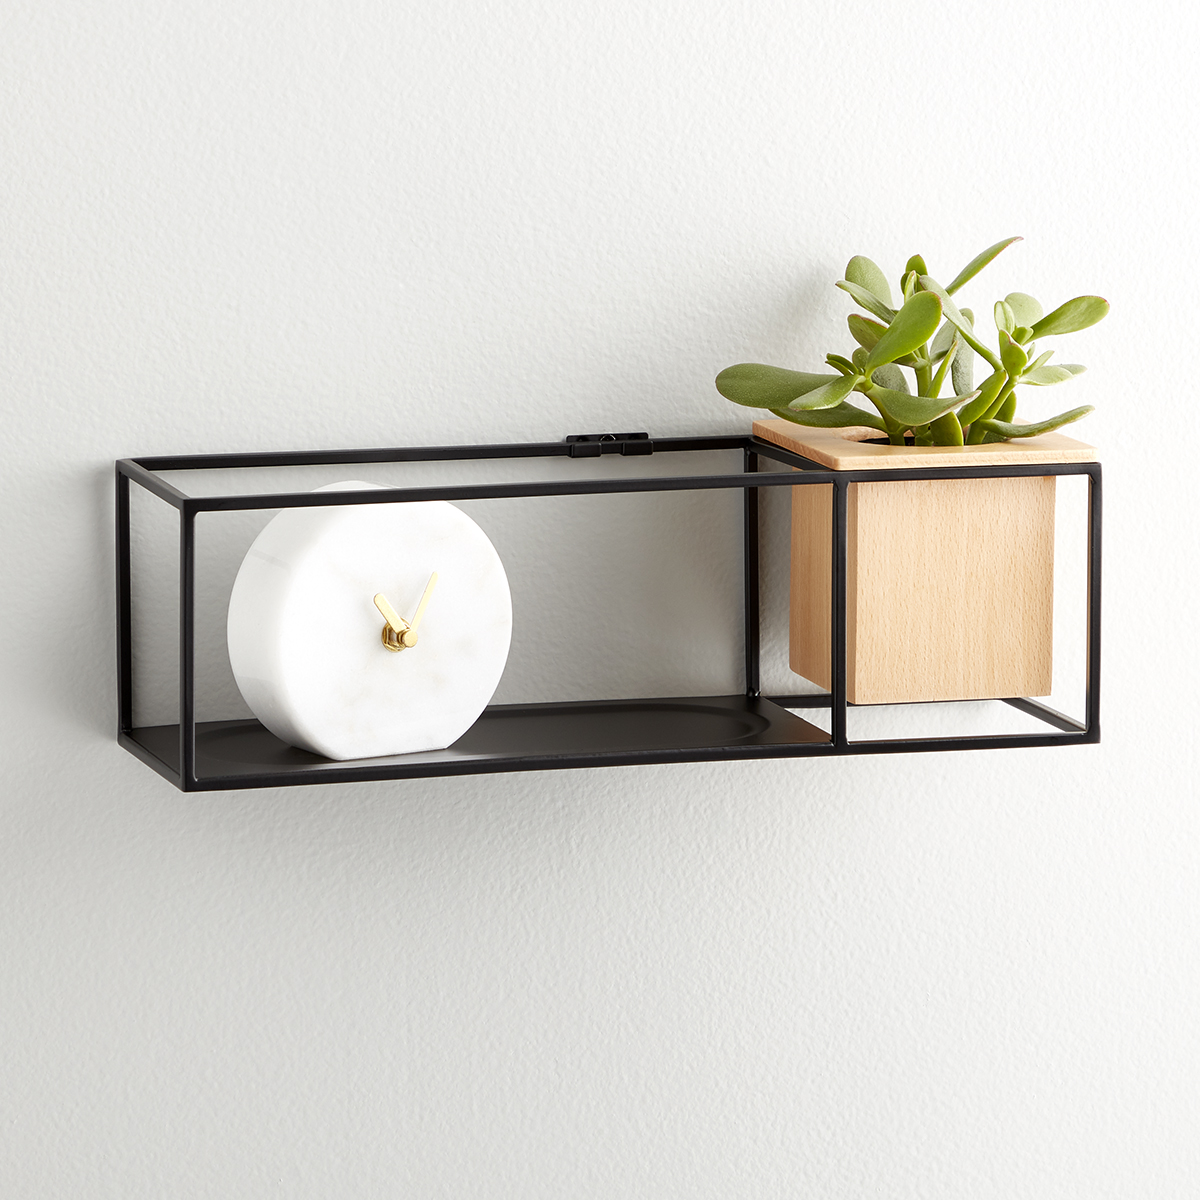 Wall Shelves Small - Webfaceconsult